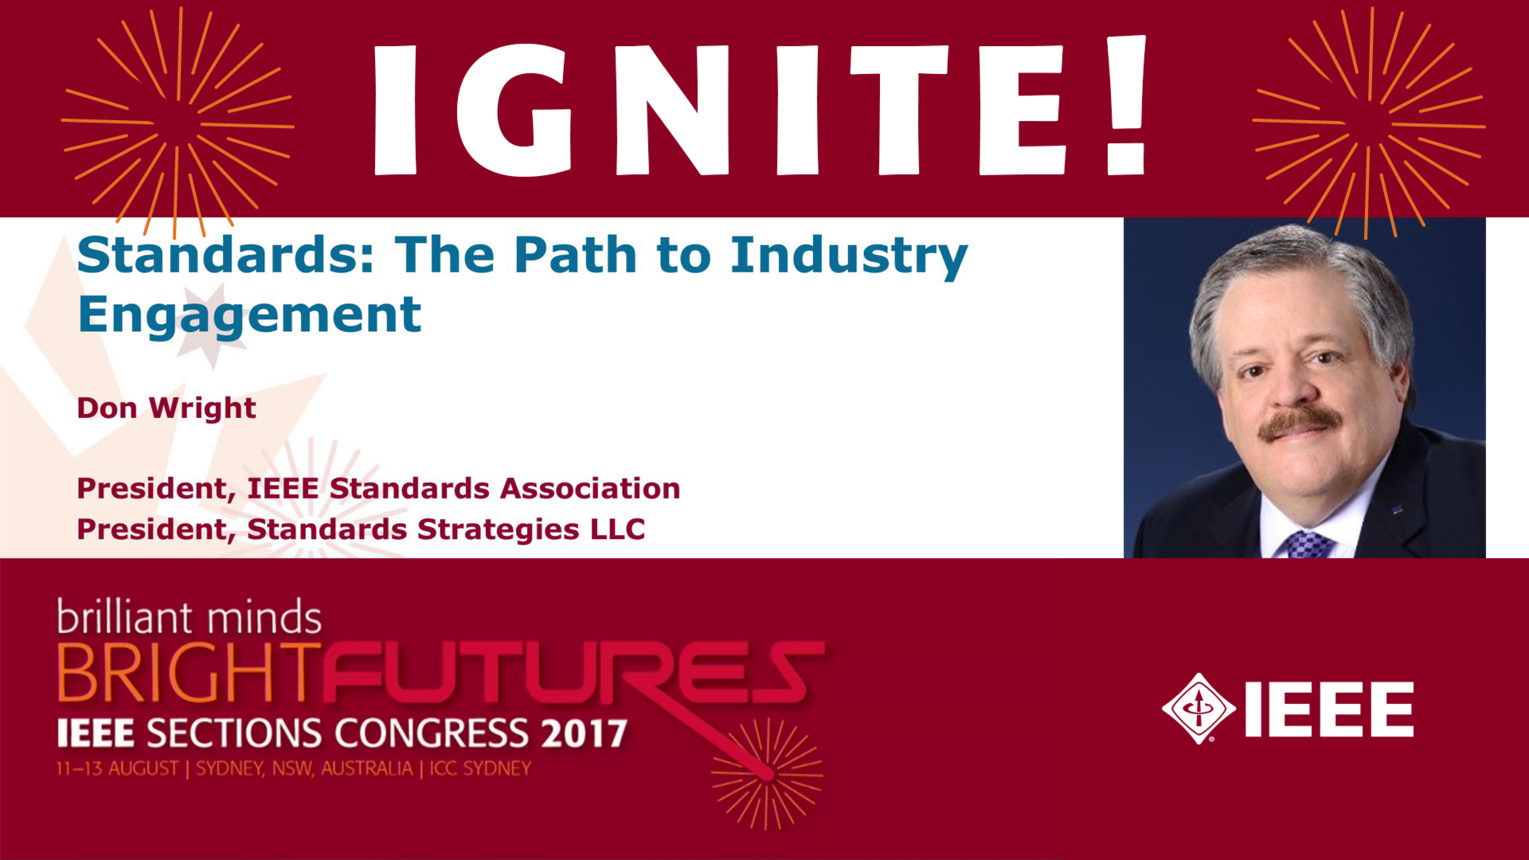 Standards: The Path to Industry Engagement - Don Wright - Ignite: Sections Congress 2017